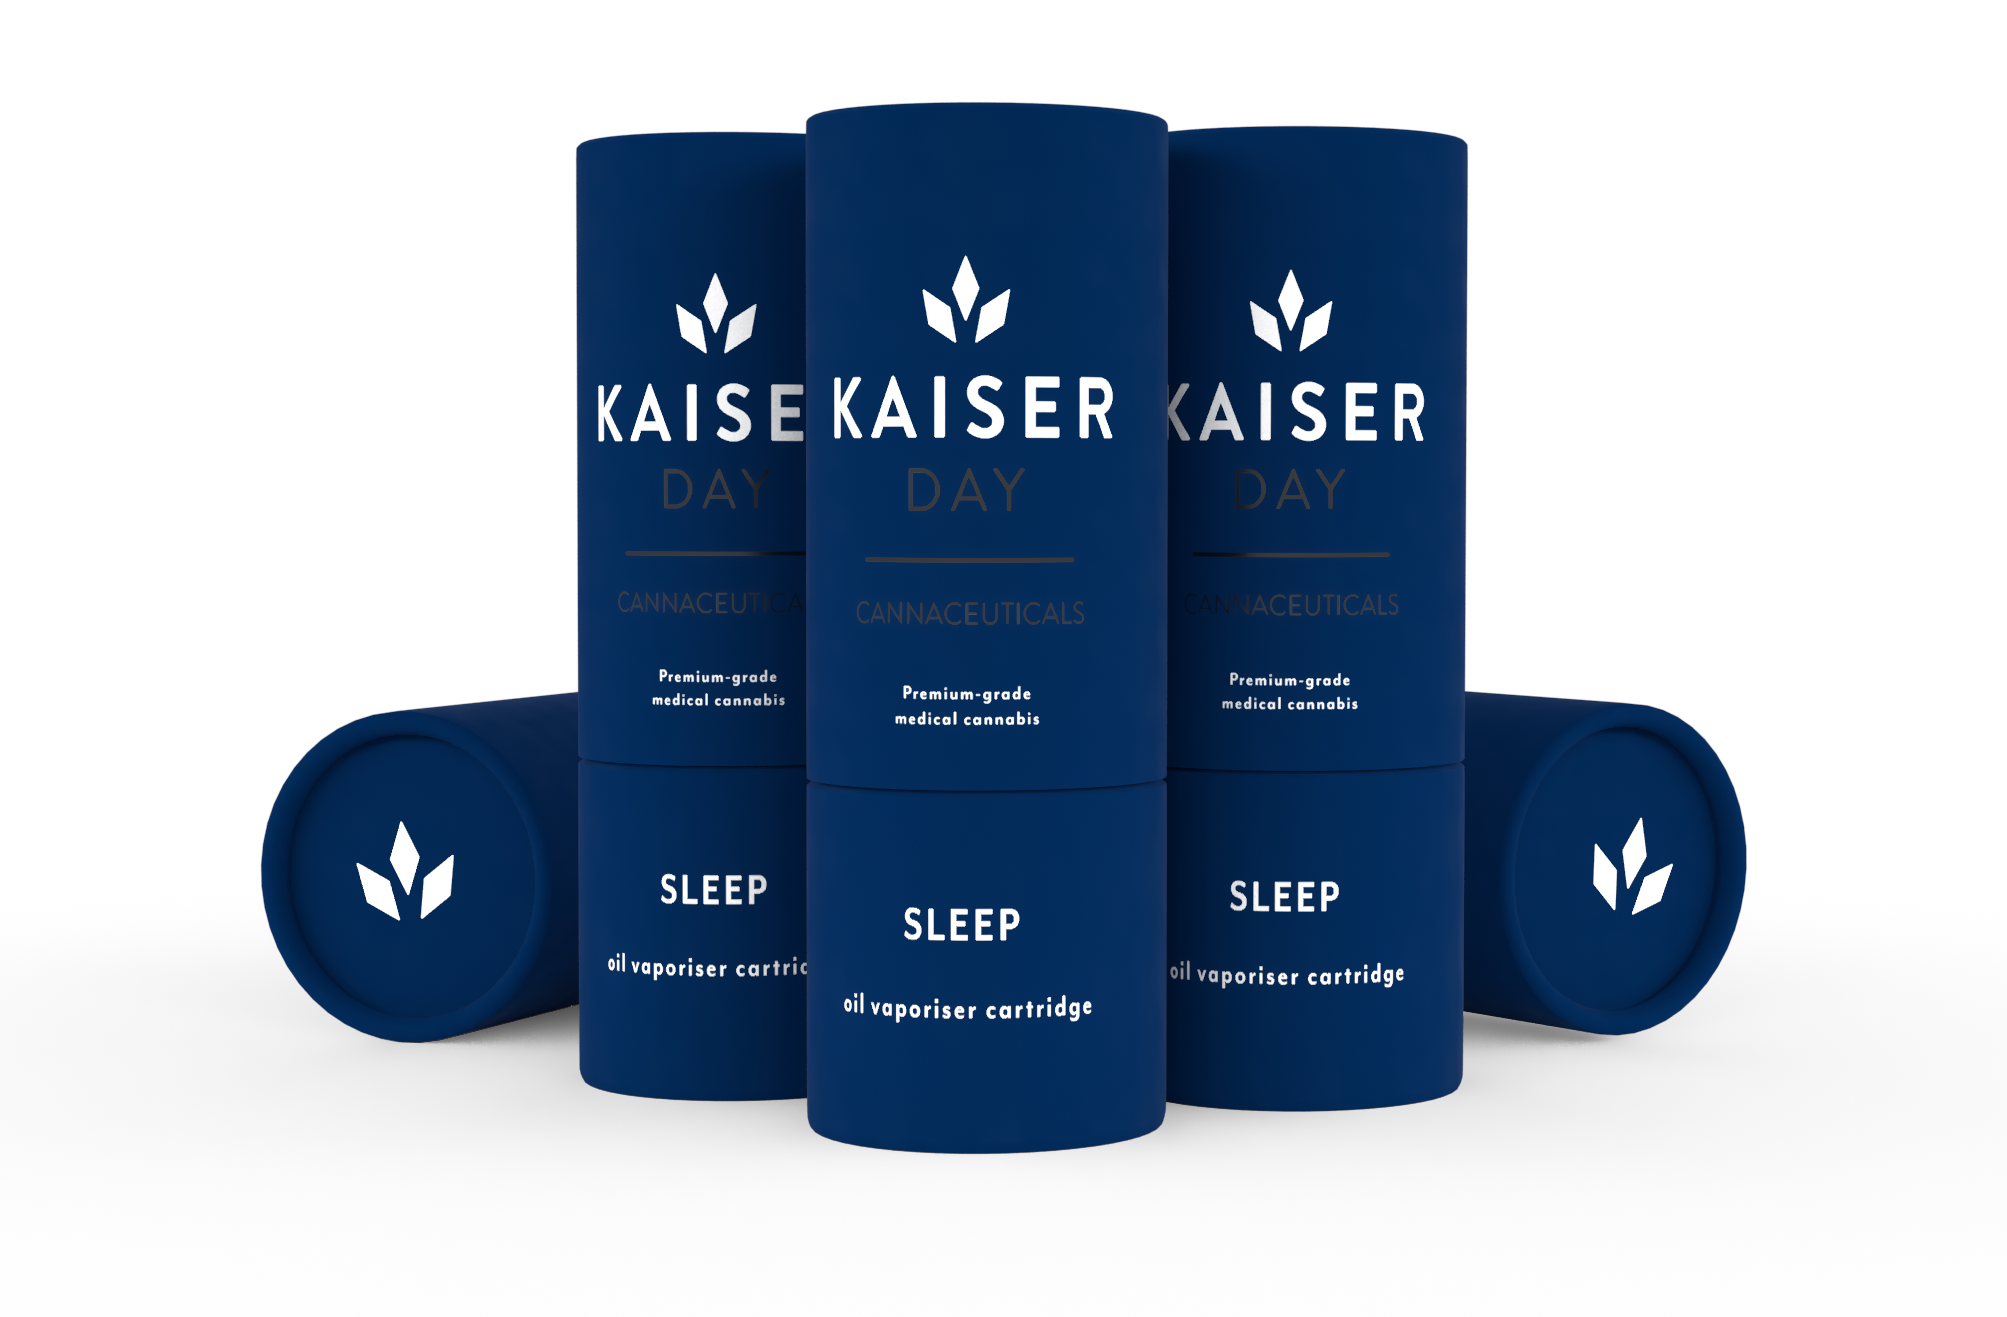 SLEEP - Kaiser Day Cannaceuticals